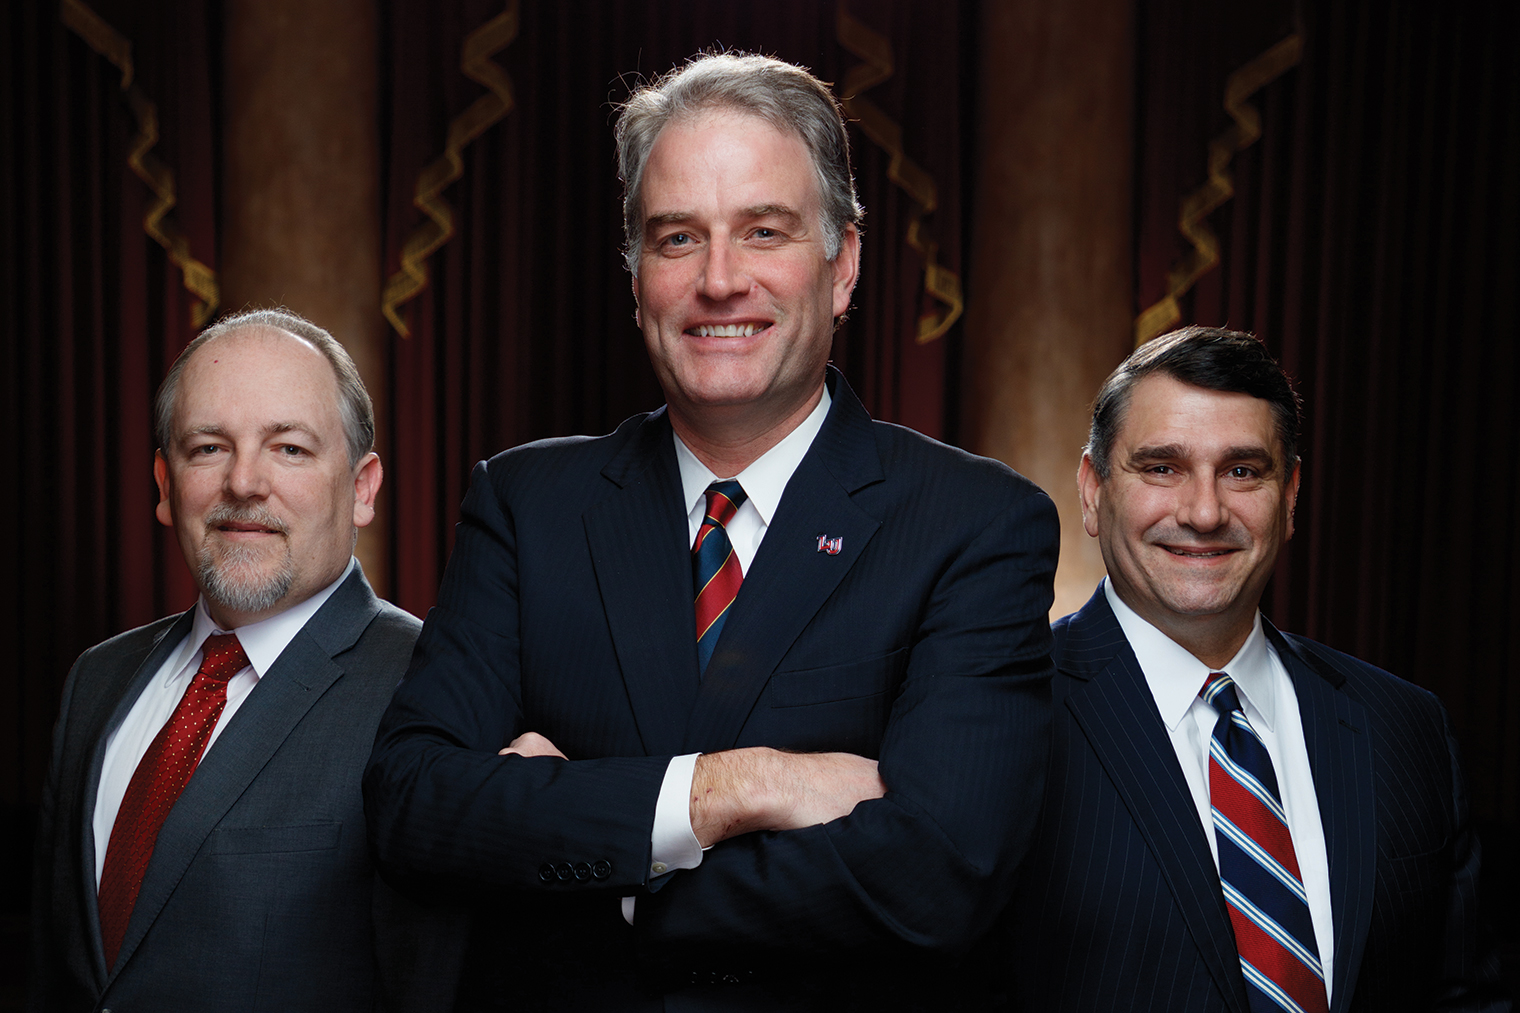 Former U.S. Rep. Robert Hurt (center) will work closely with Liberty University Helms School of Government Dean Dr. Shawn Akers (left) and Liberty University School of Law Dean Dr. Keith Faulkner as he establishes the new Center for Law & Government at Liberty.